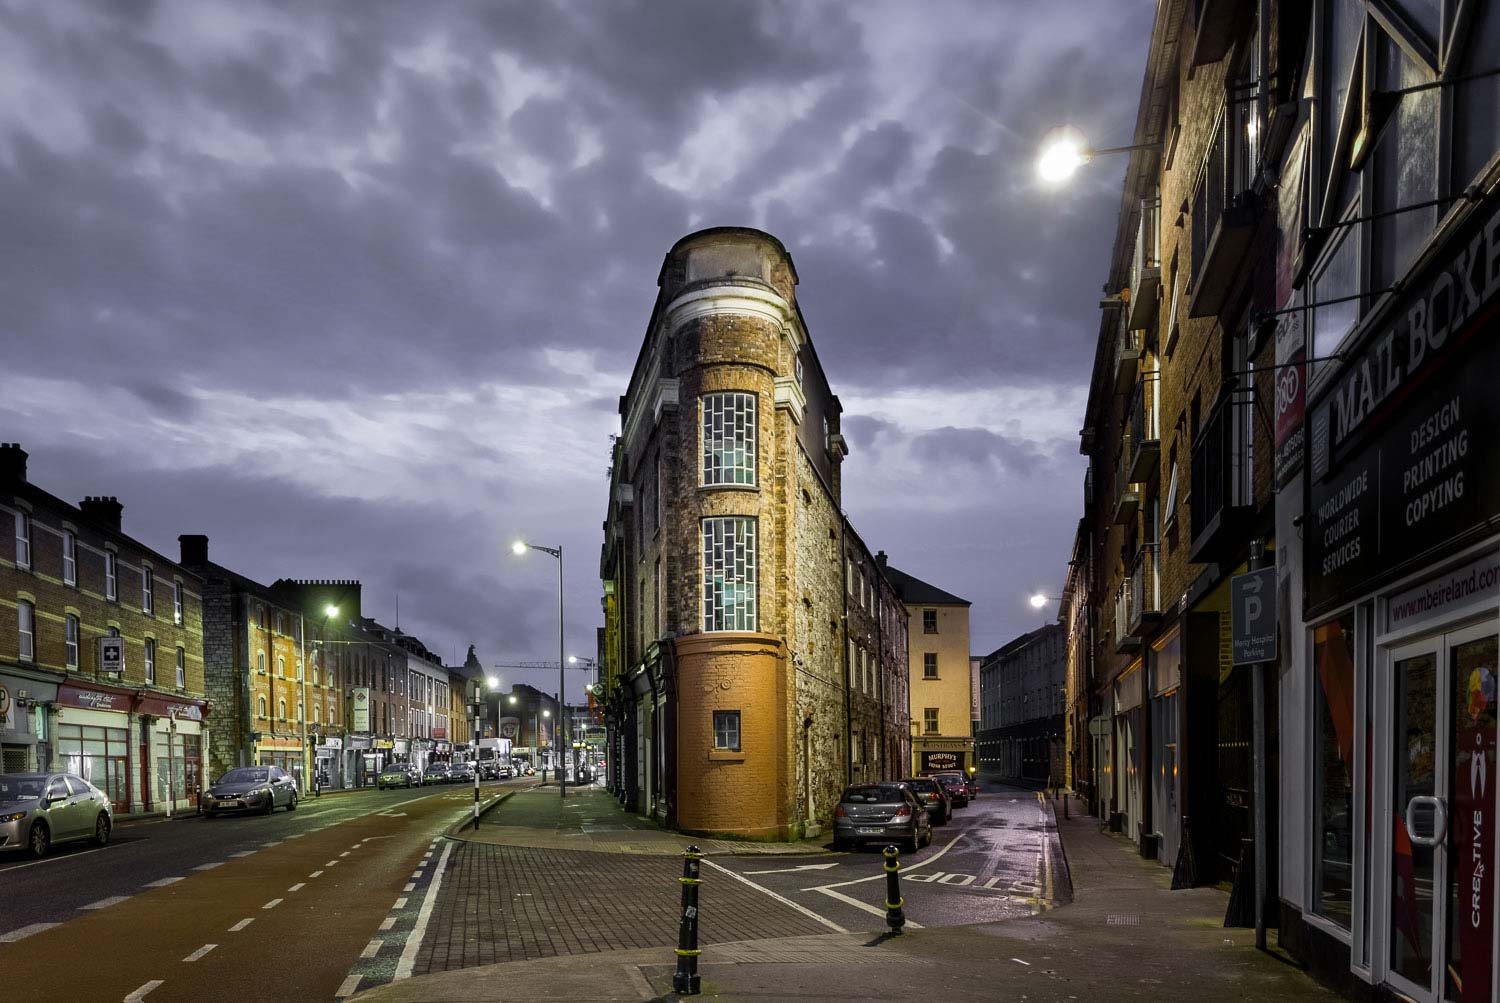 Cork's iconic flatiron building located on Washington Street in Cork City Centre. Captured by photographer David Creedon.